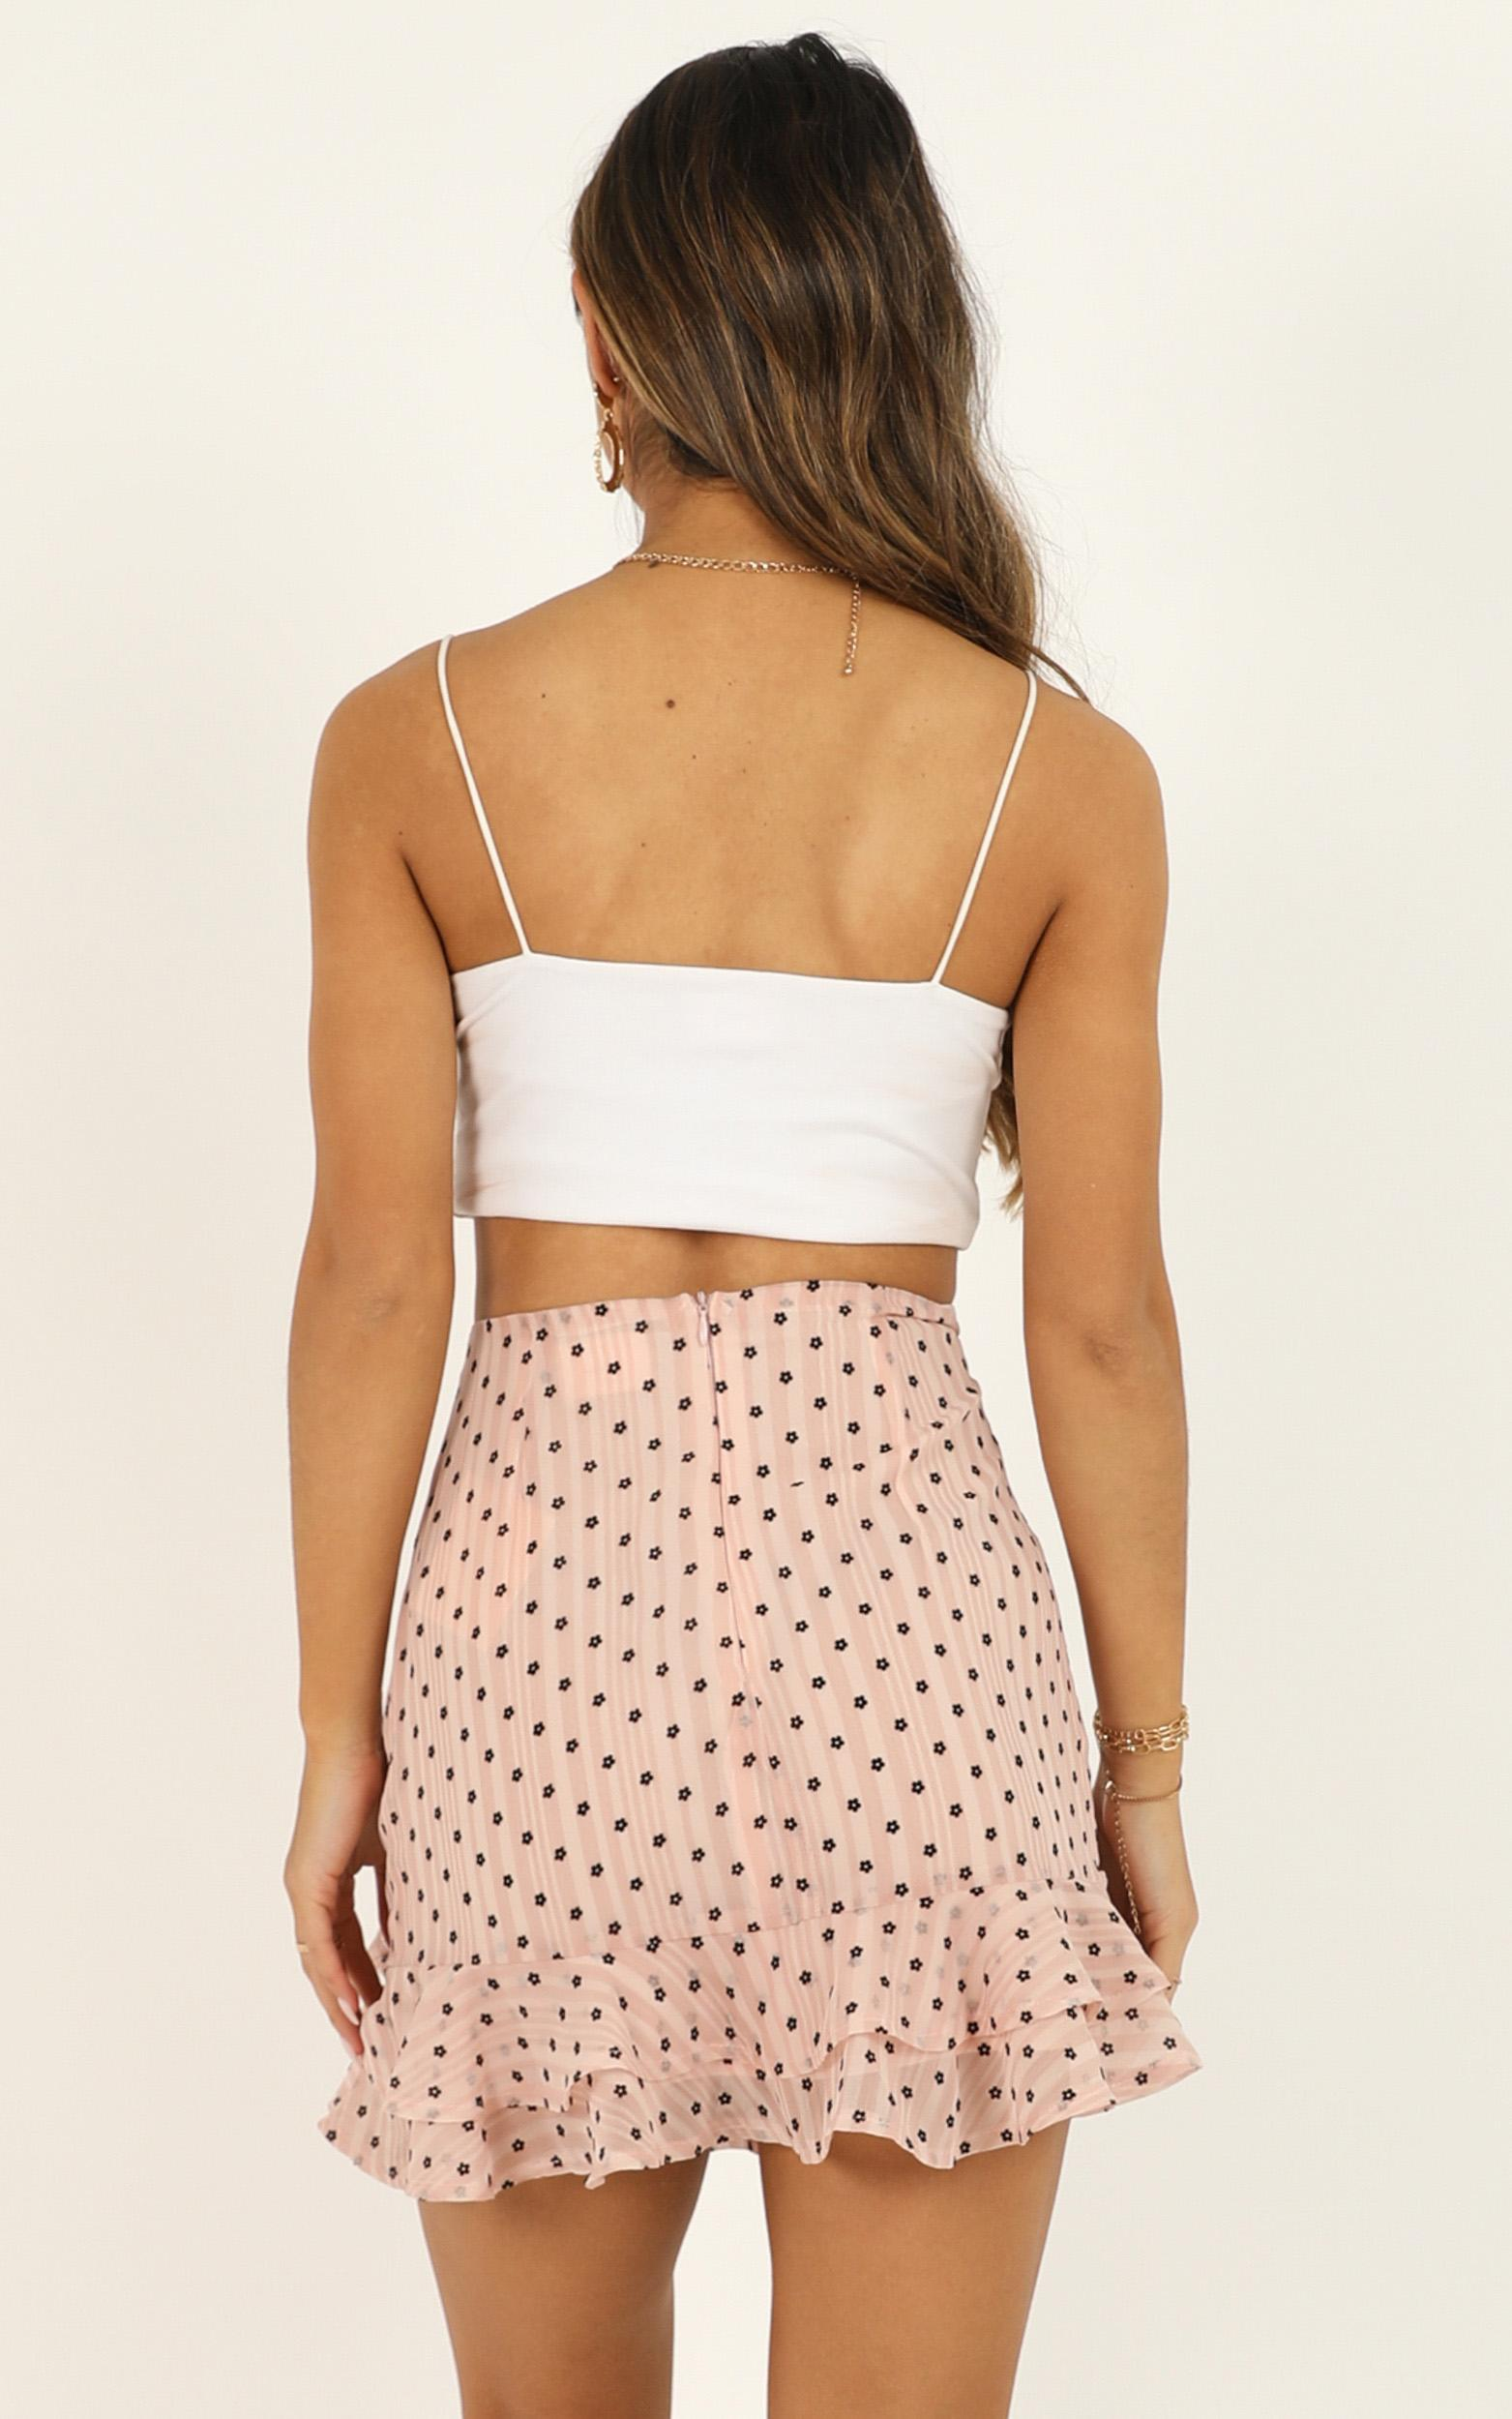 When You Kiss Me Skirt In blush floral - 20 (XXXXL), Blush, hi-res image number null